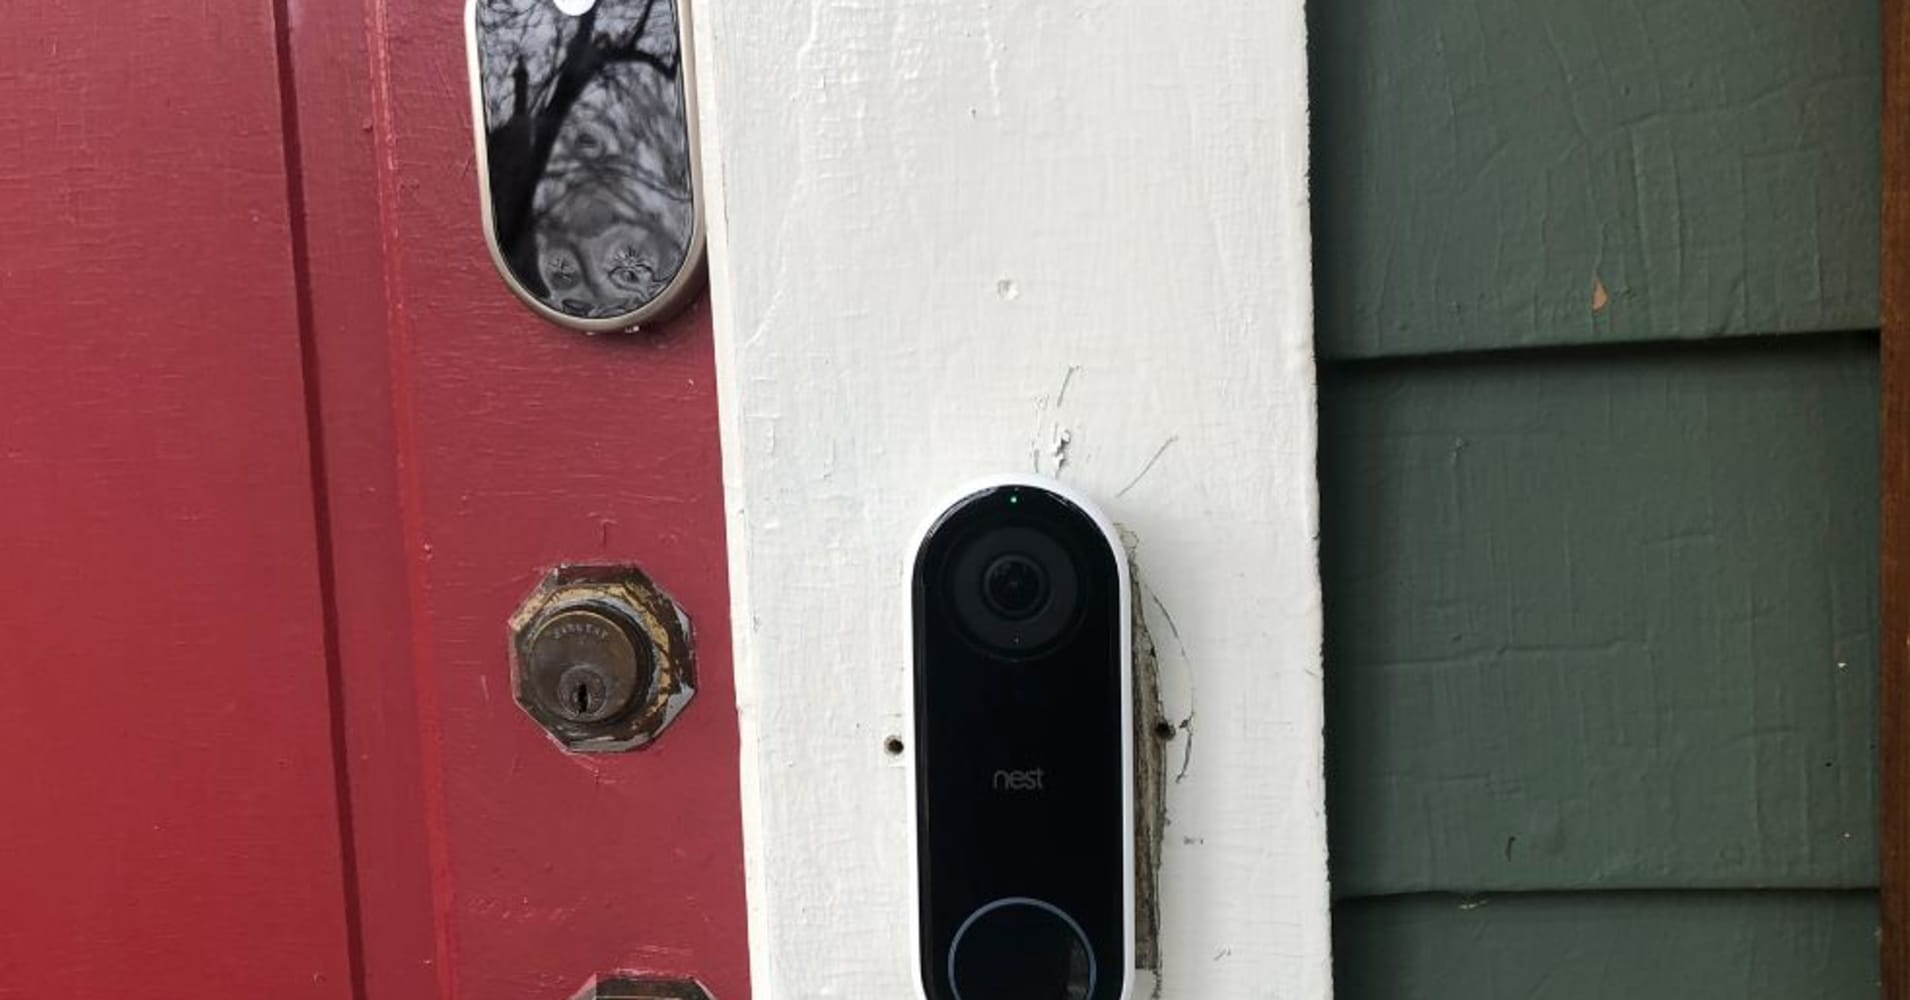 Google Nest Hello Doorbell And Next X Yale Lock Review Thermostat Wiring Ring